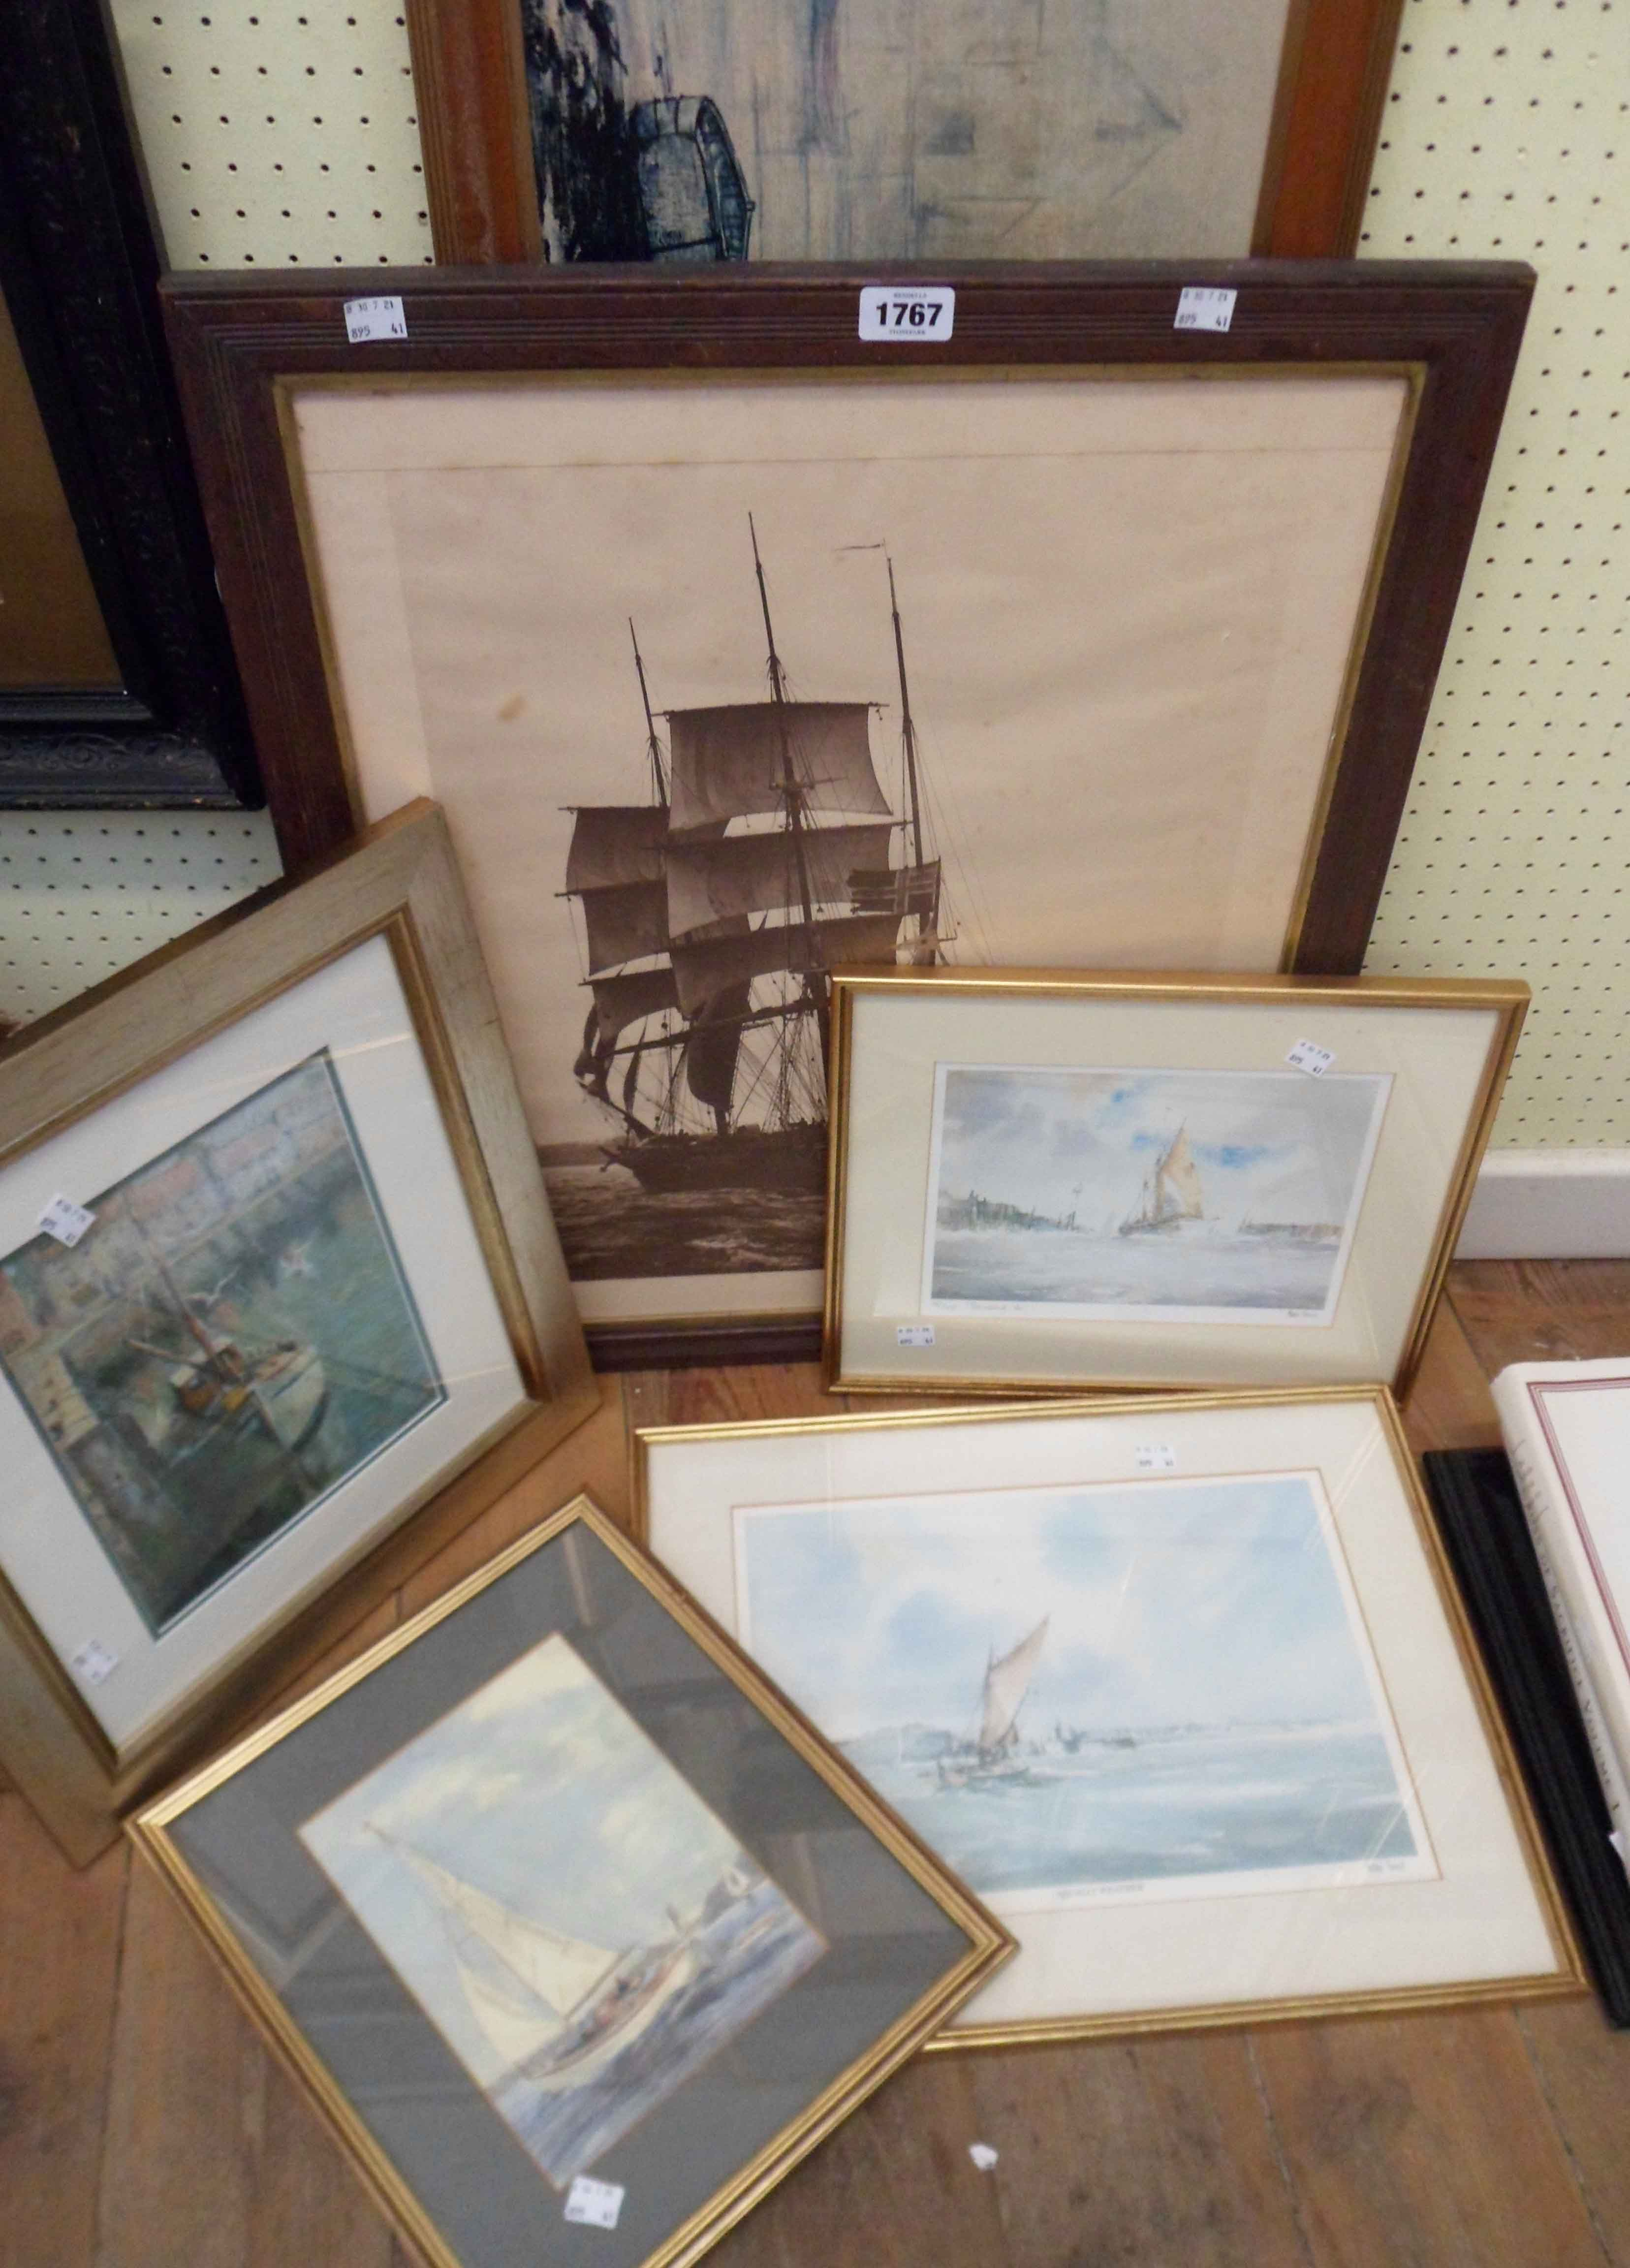 A selection of framed maritime prints - various condition